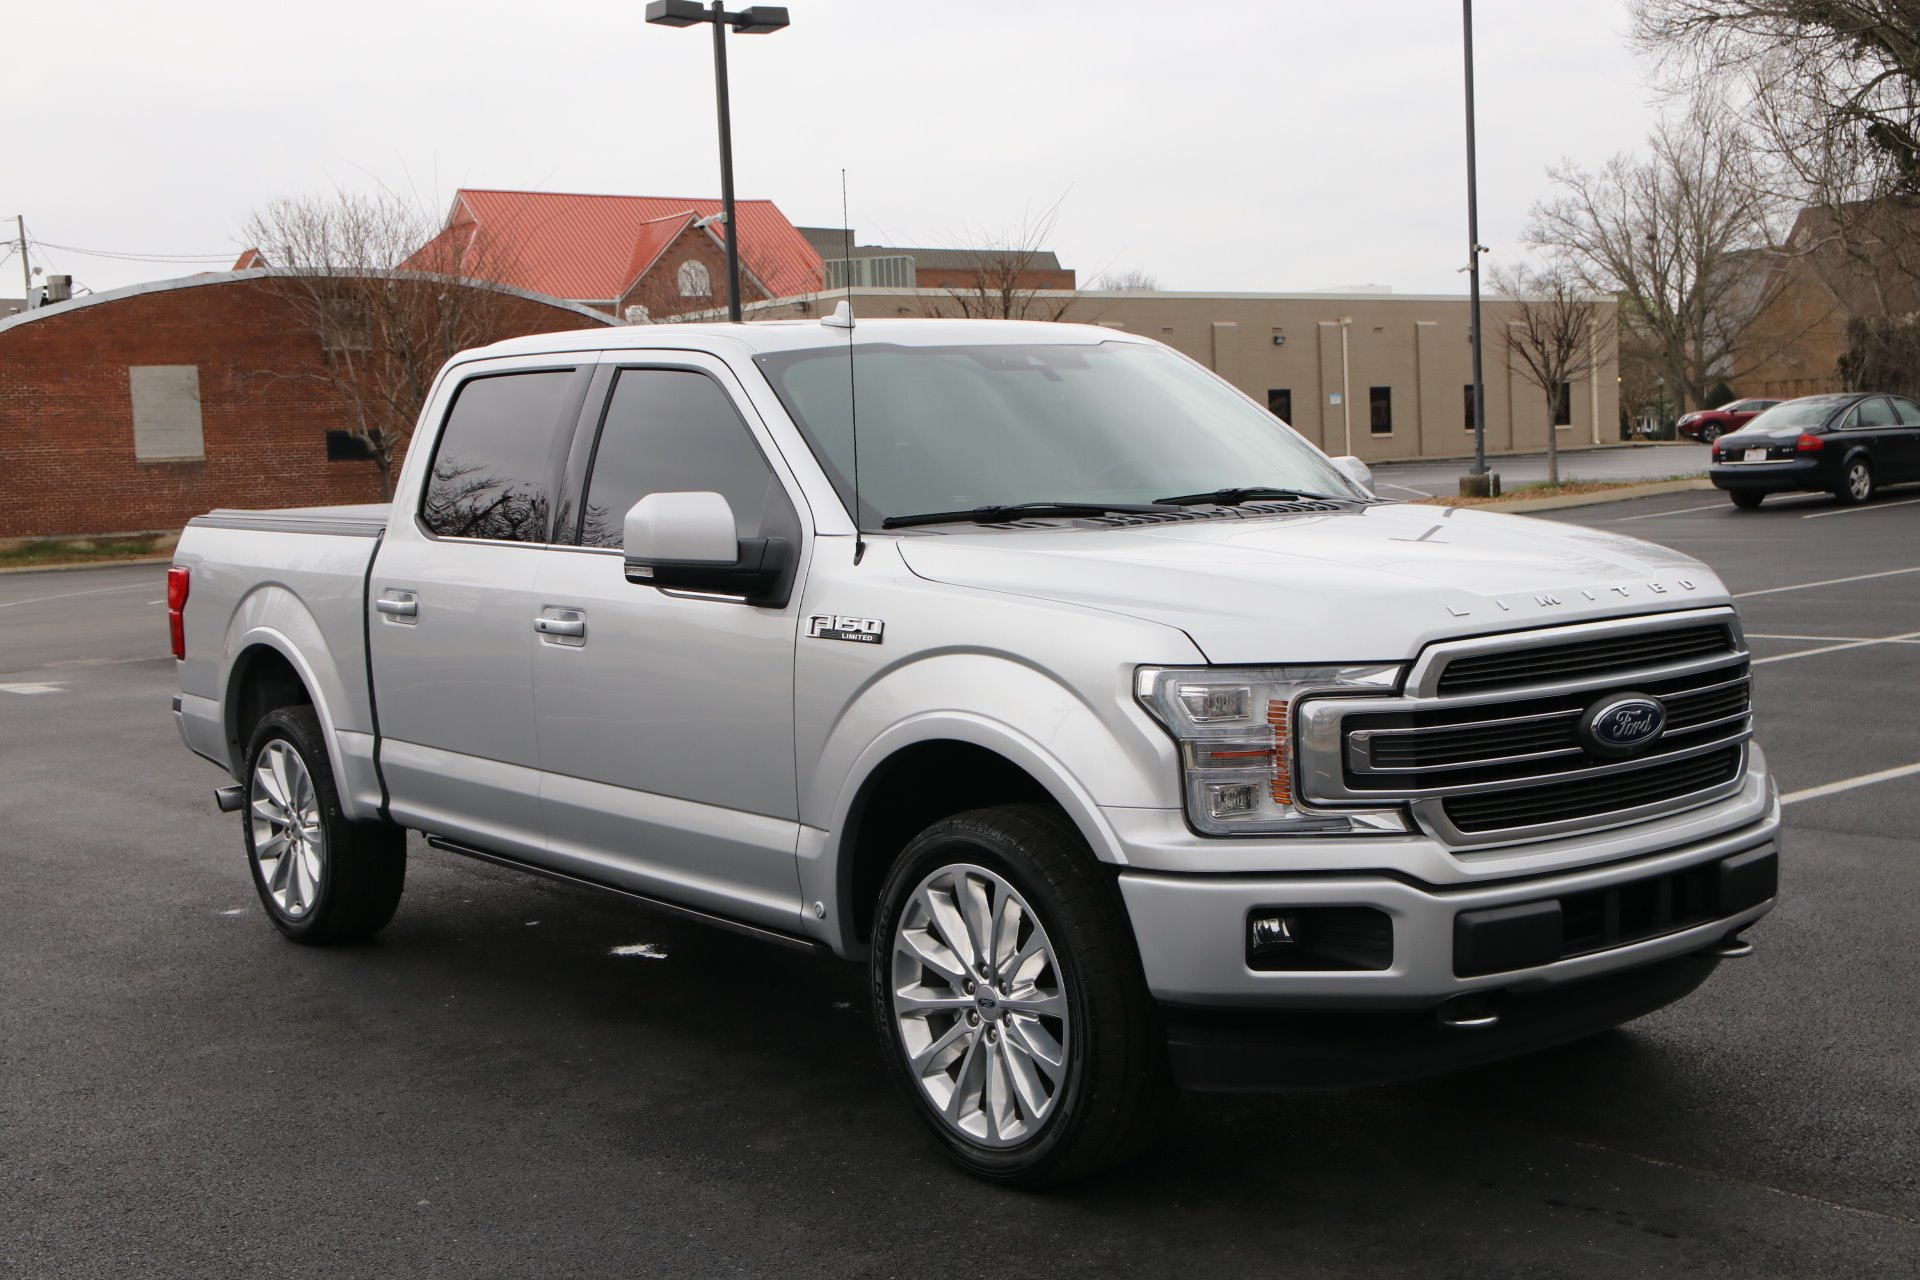 Used 2018 Ford F-150 Limited Crew Cab 4x4 3.5 Ecoboost W/NAV Limited for sale Sold at Auto Collection in Murfreesboro TN 37129 1